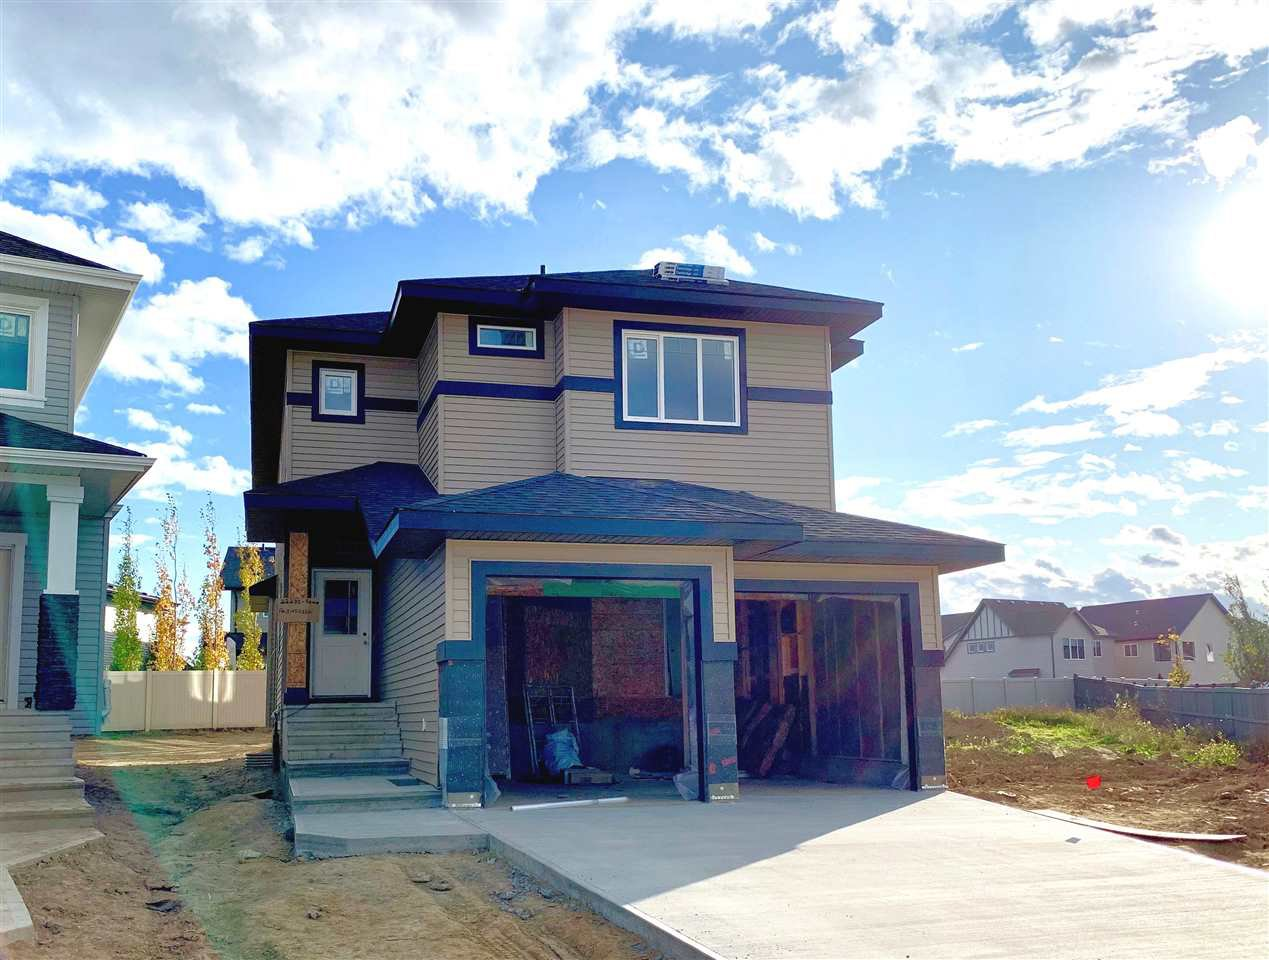 Main Photo: 22235 96 Avenue NW in Edmonton: Zone 58 House for sale : MLS®# E4174990